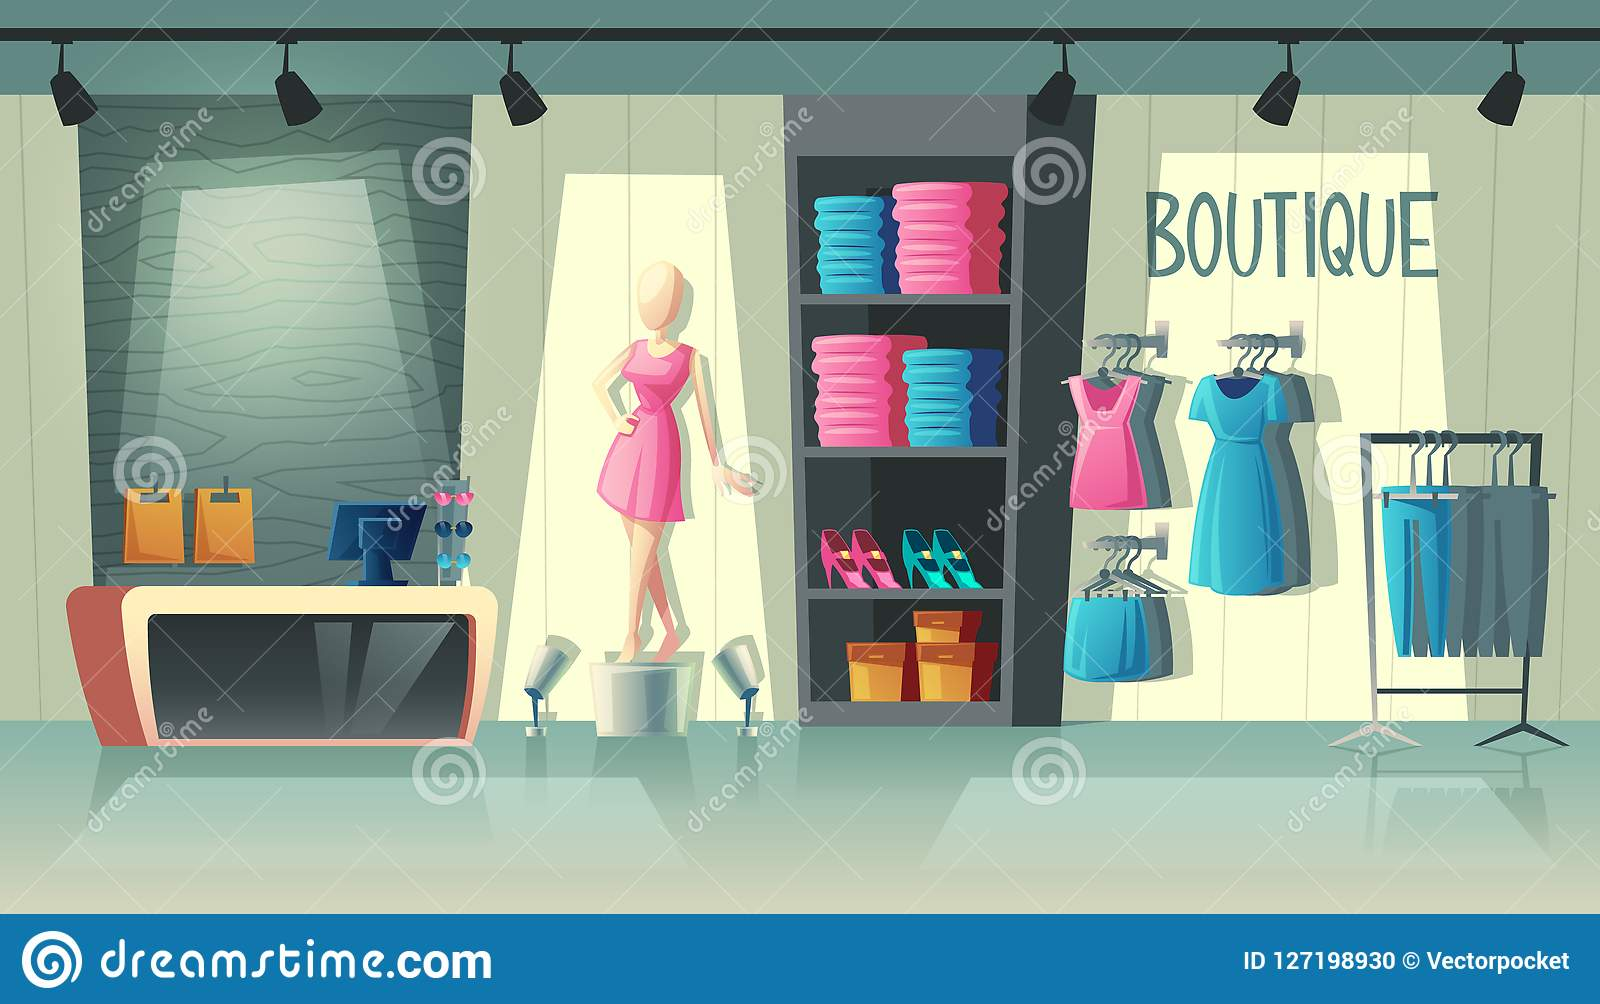 c1d50ca74 Vector clothing shop interior - wardrobe with woman clothes, cartoon  mannequin and stuff on hangers. Cashbox with table inside boutique, dress  collection.